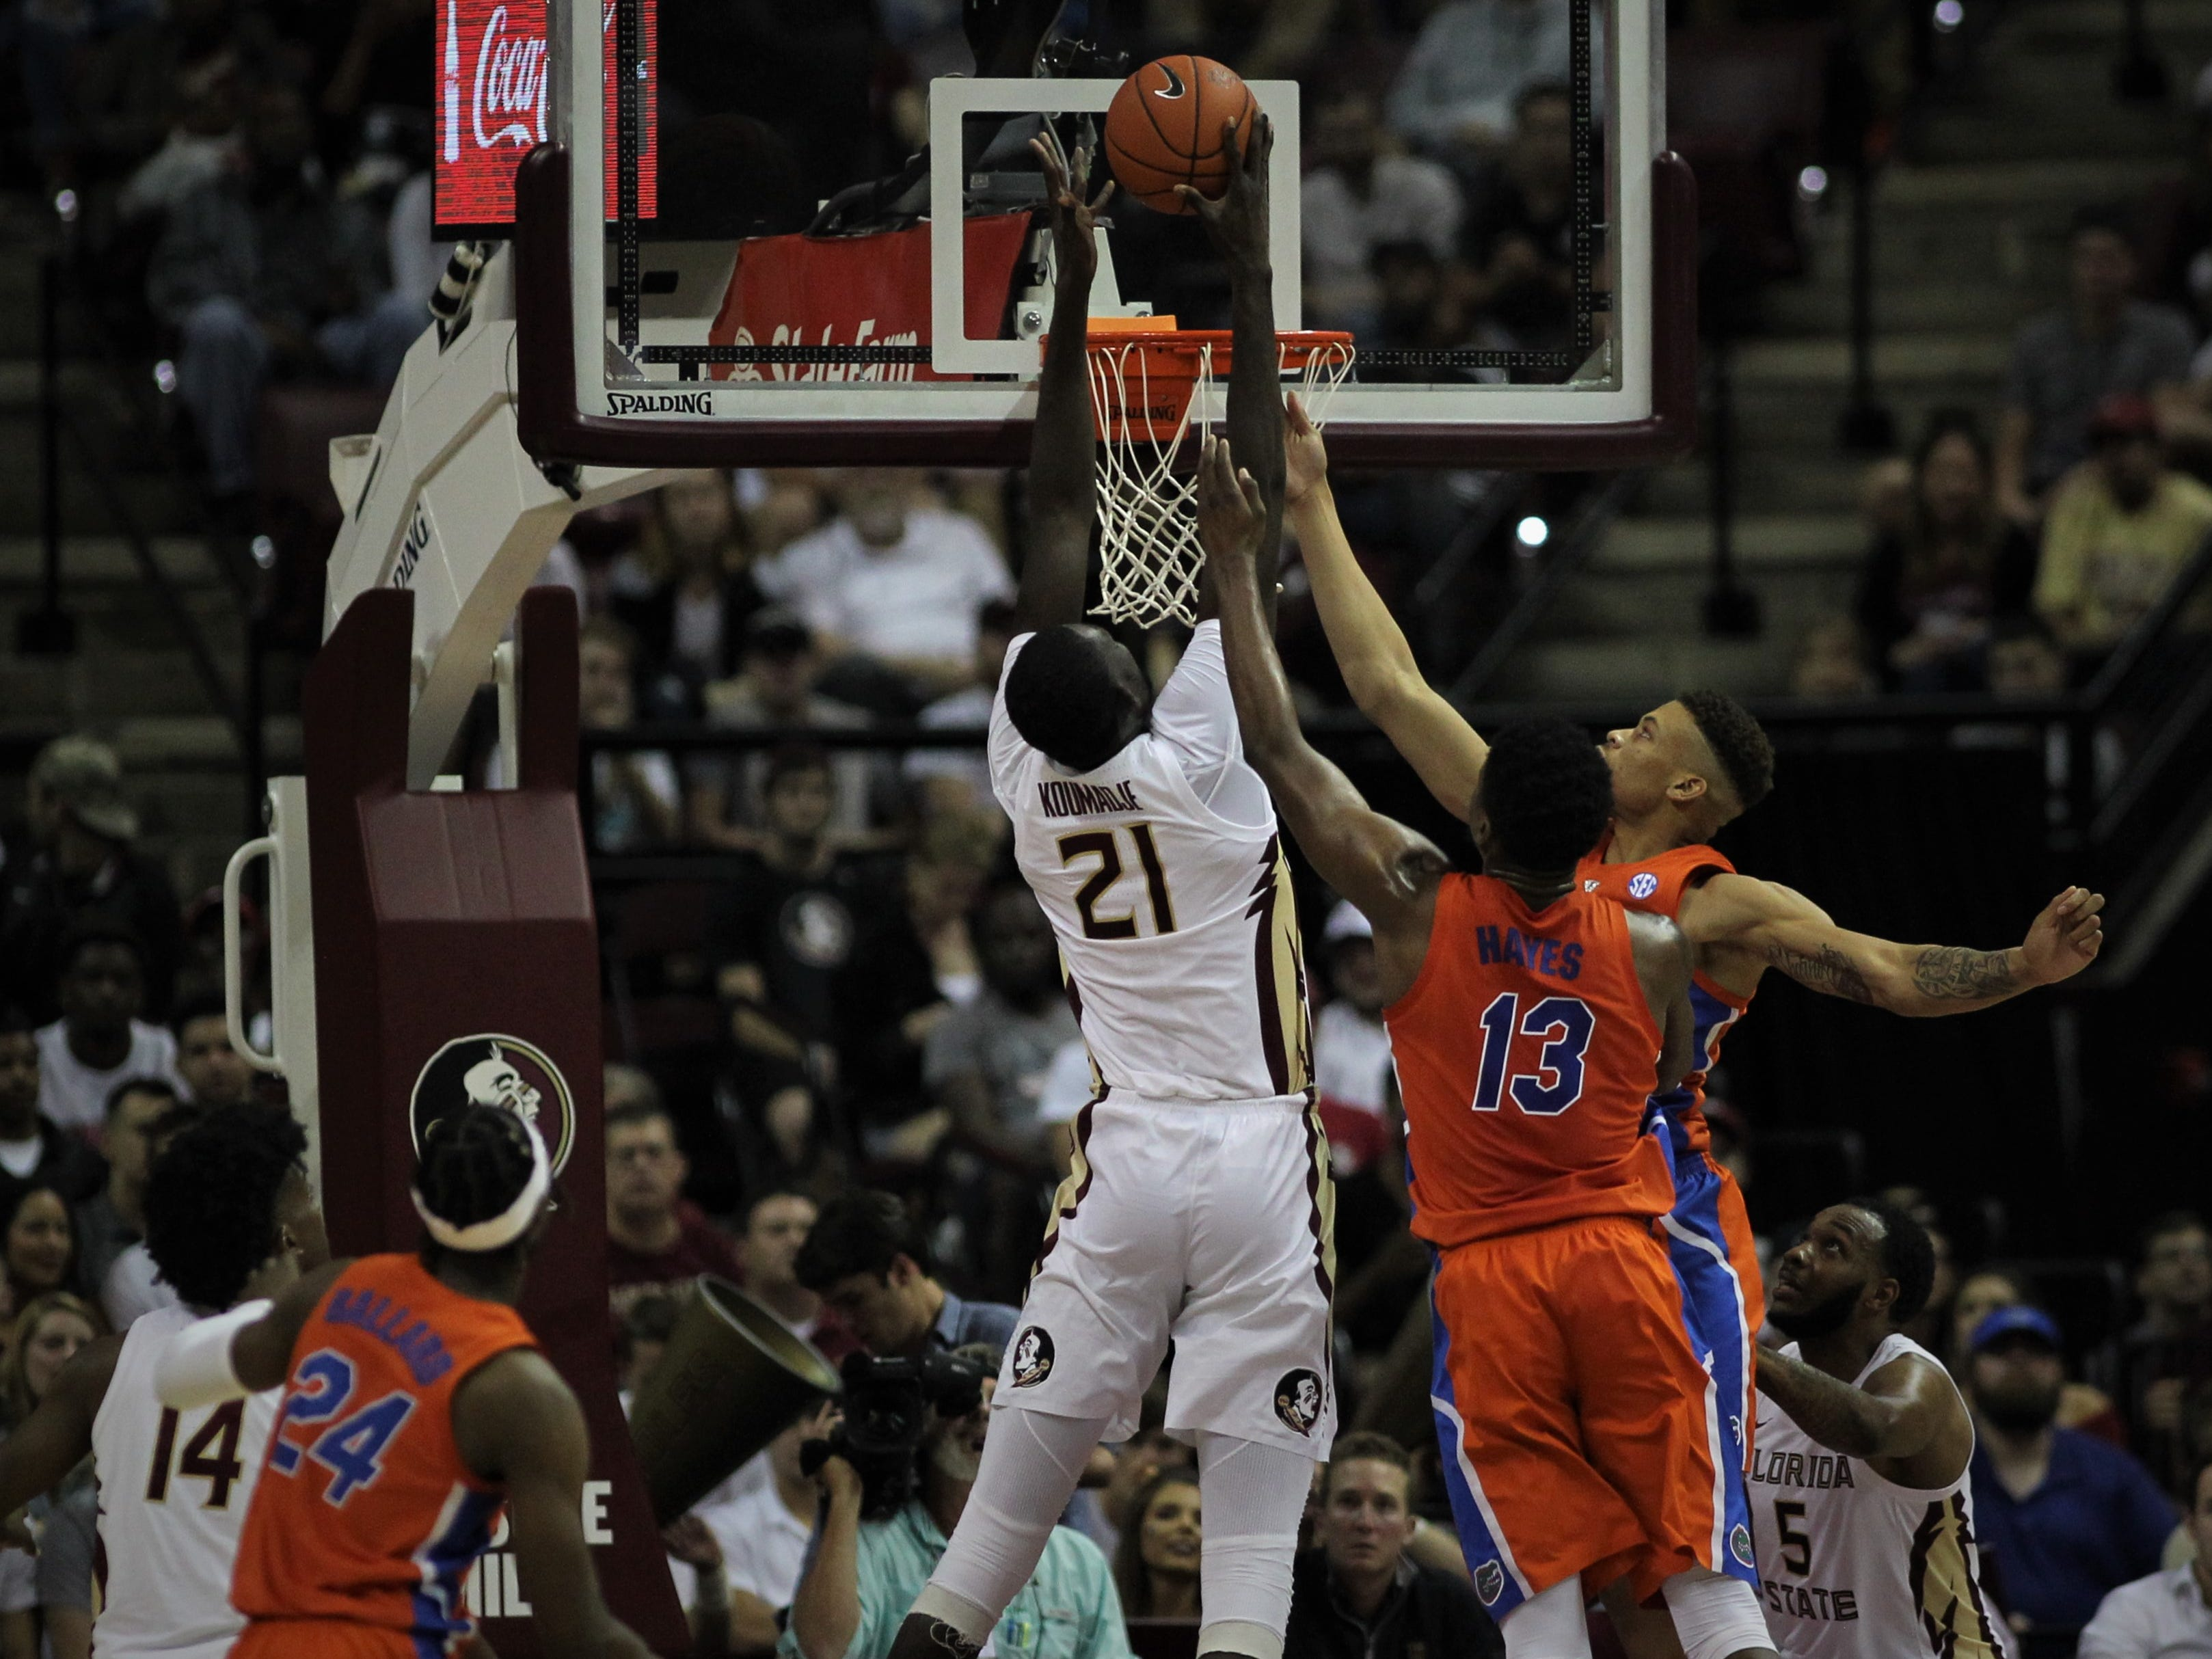 Florida State center Christ Koumadje goes up above the rim for a rebound during the Sunshine Showdown game against Florida on Tuesday at the Tucker Civic Center.